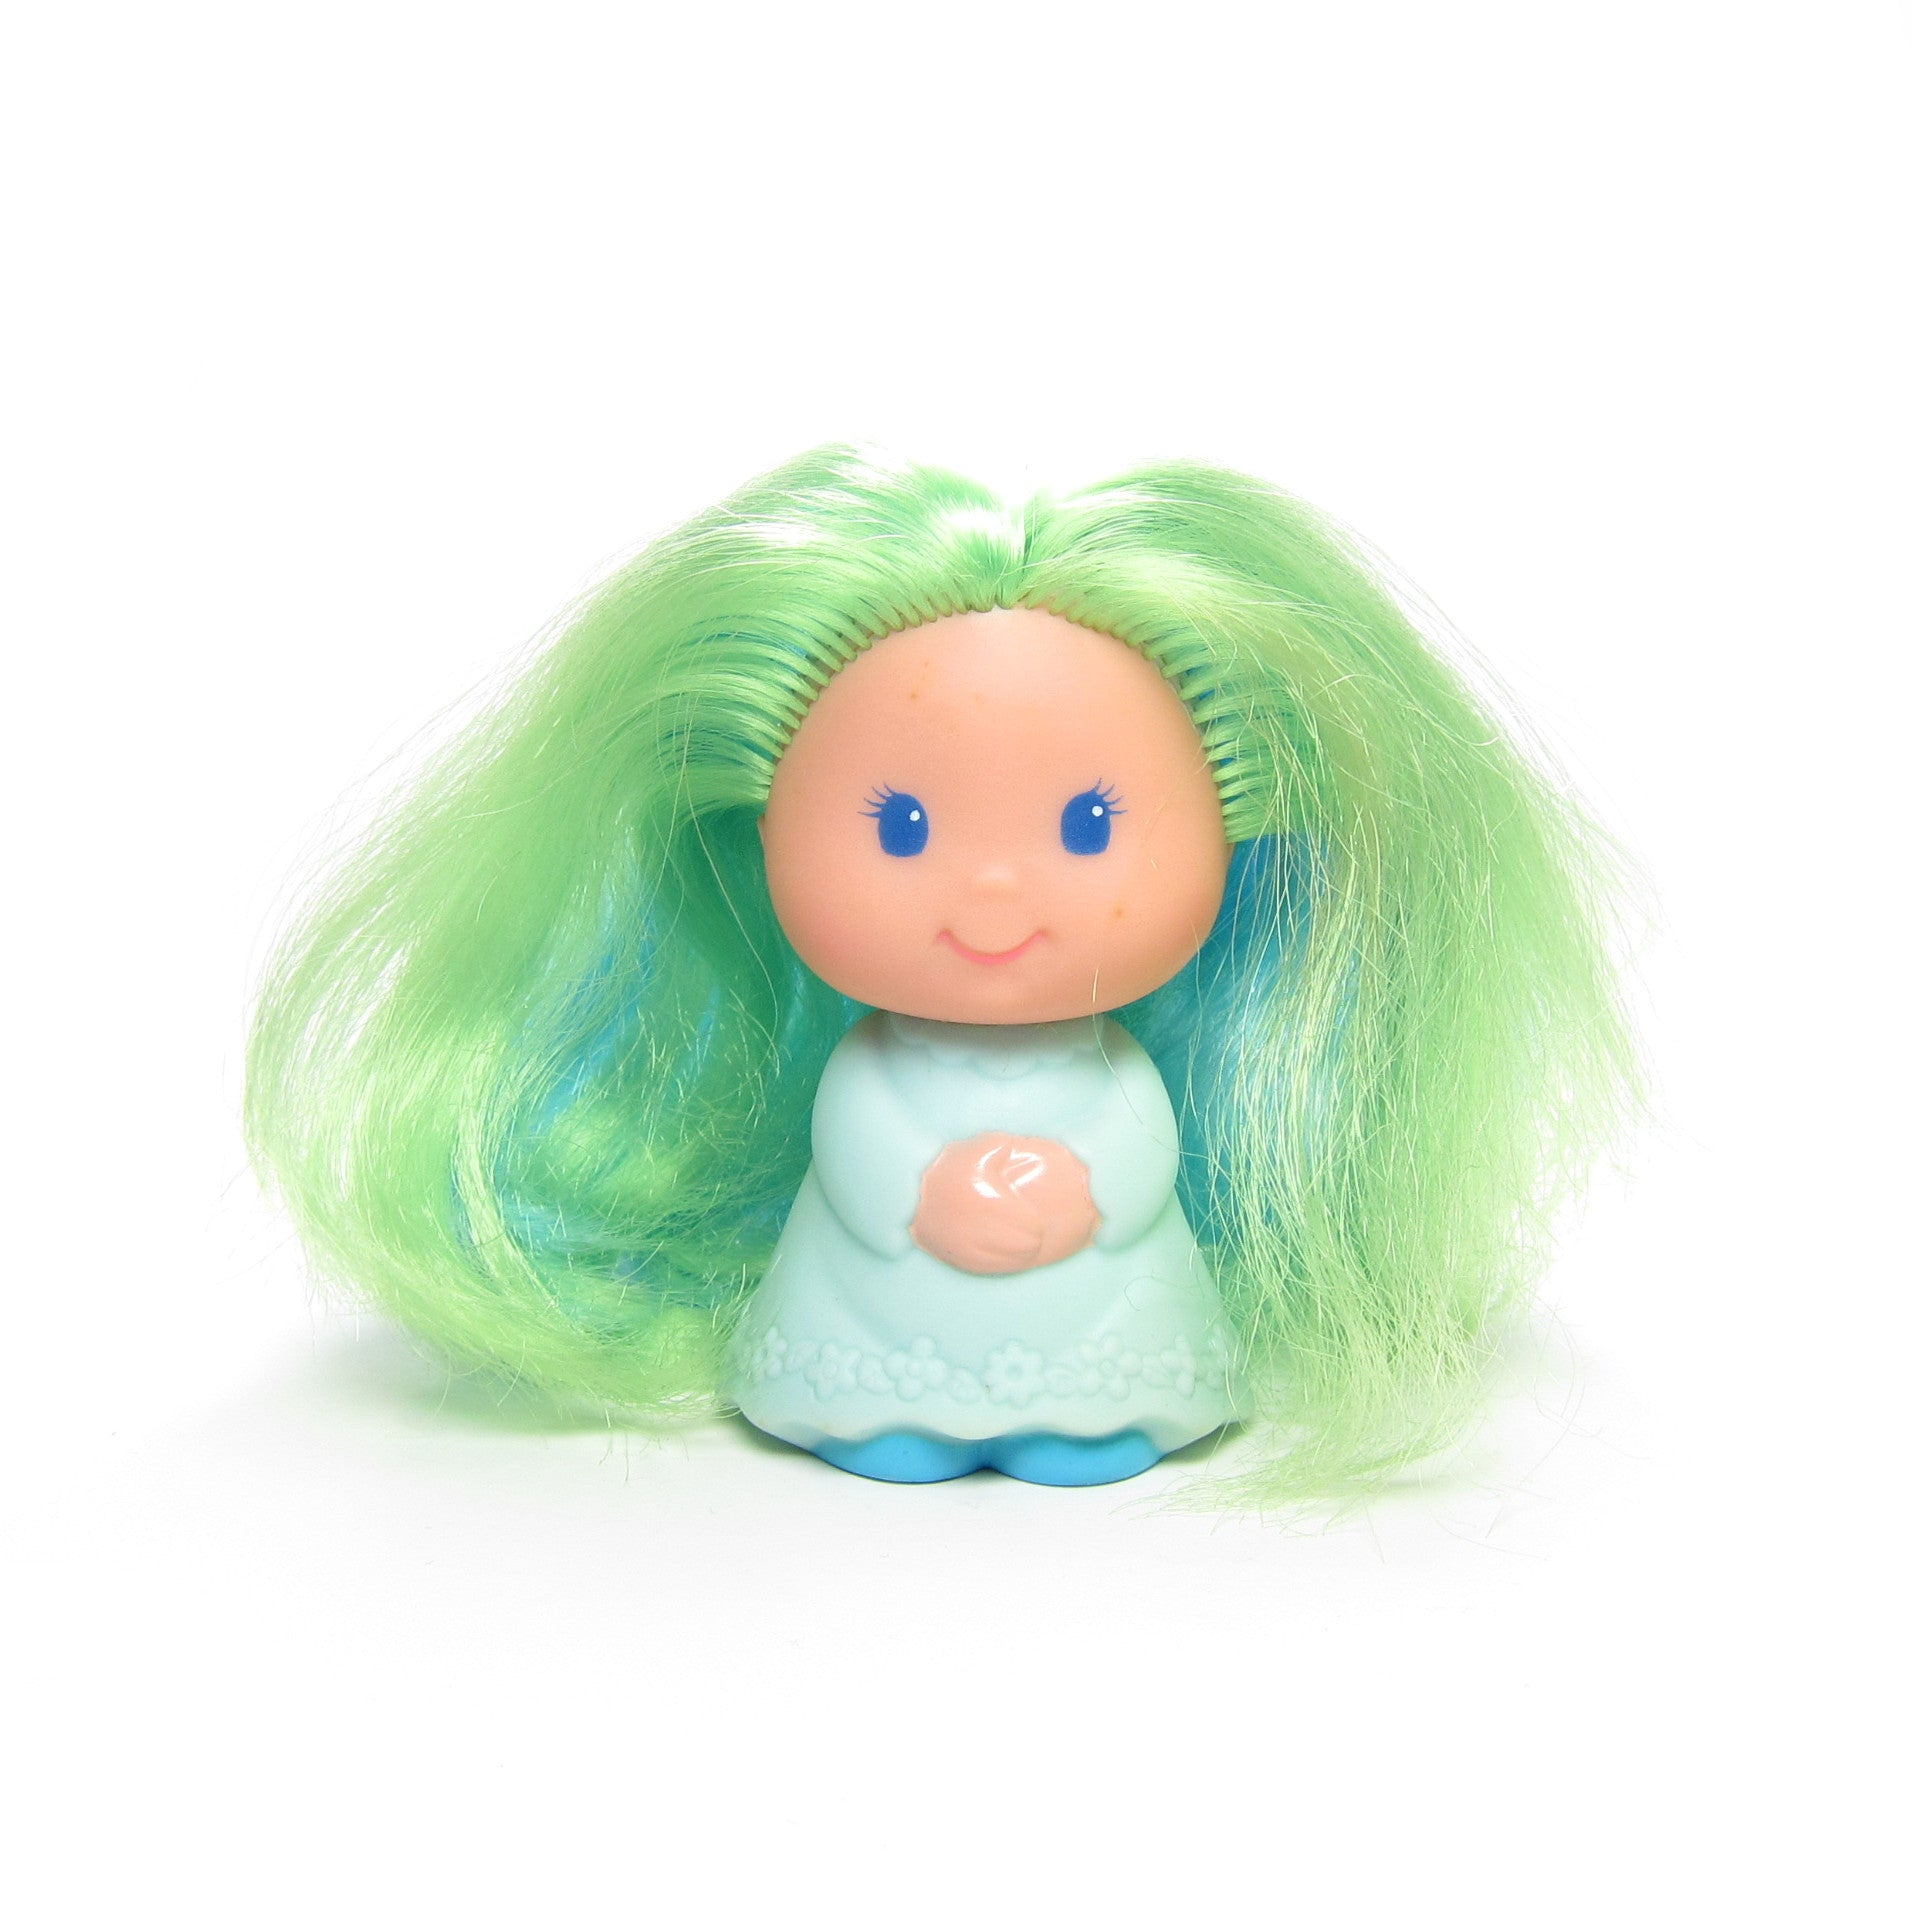 Perkypeek Lady LovelyLocks Hide N Peek Doll